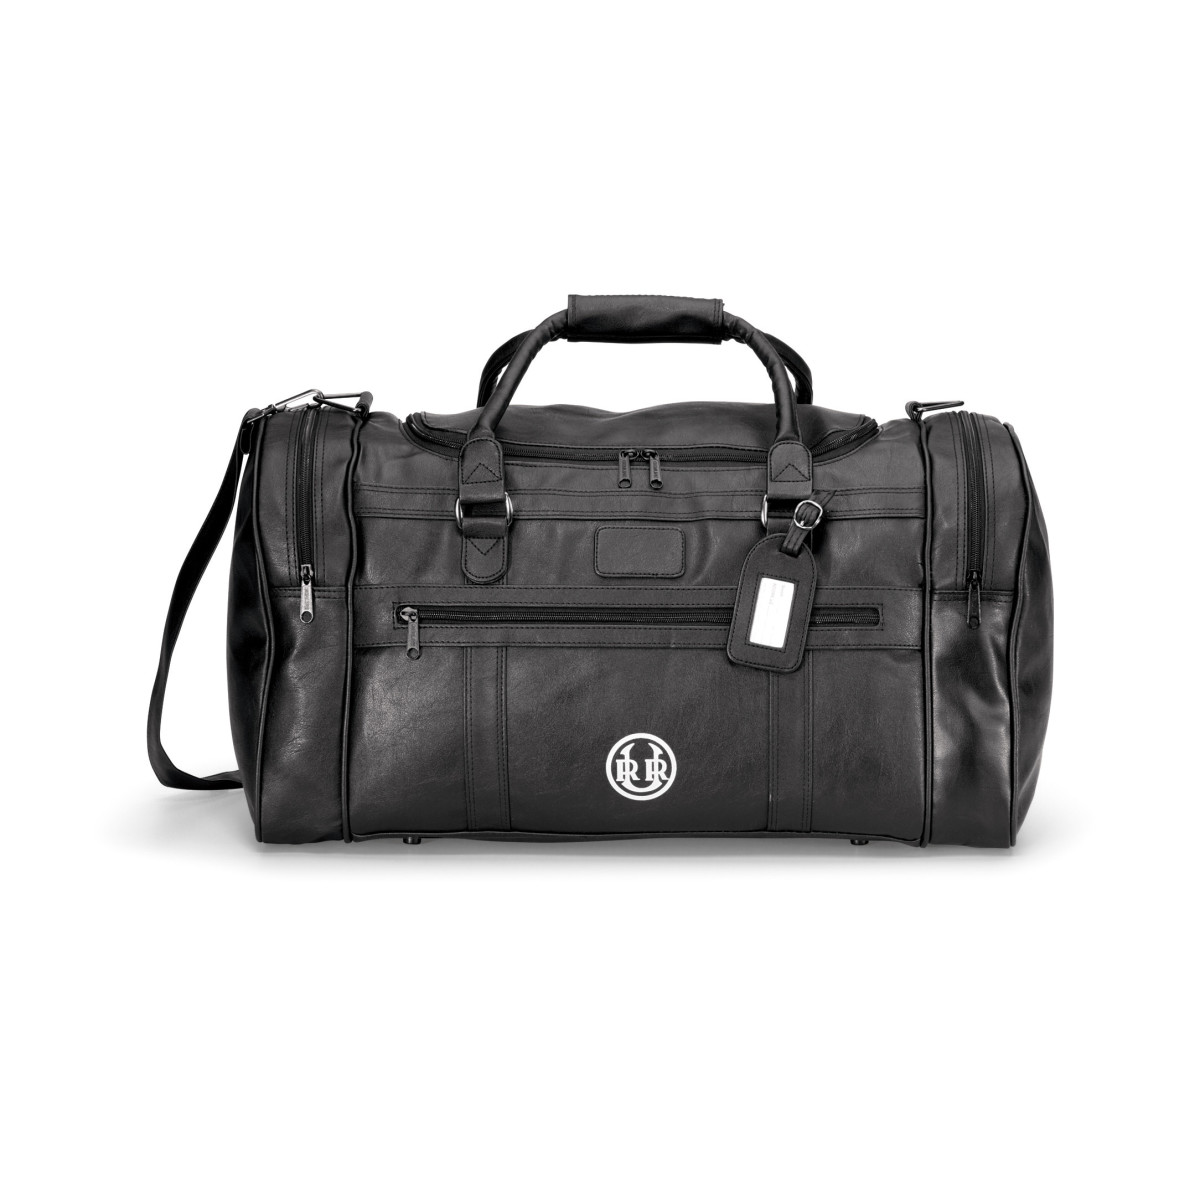 Gemline 4705 - Large Executive Travel Bag